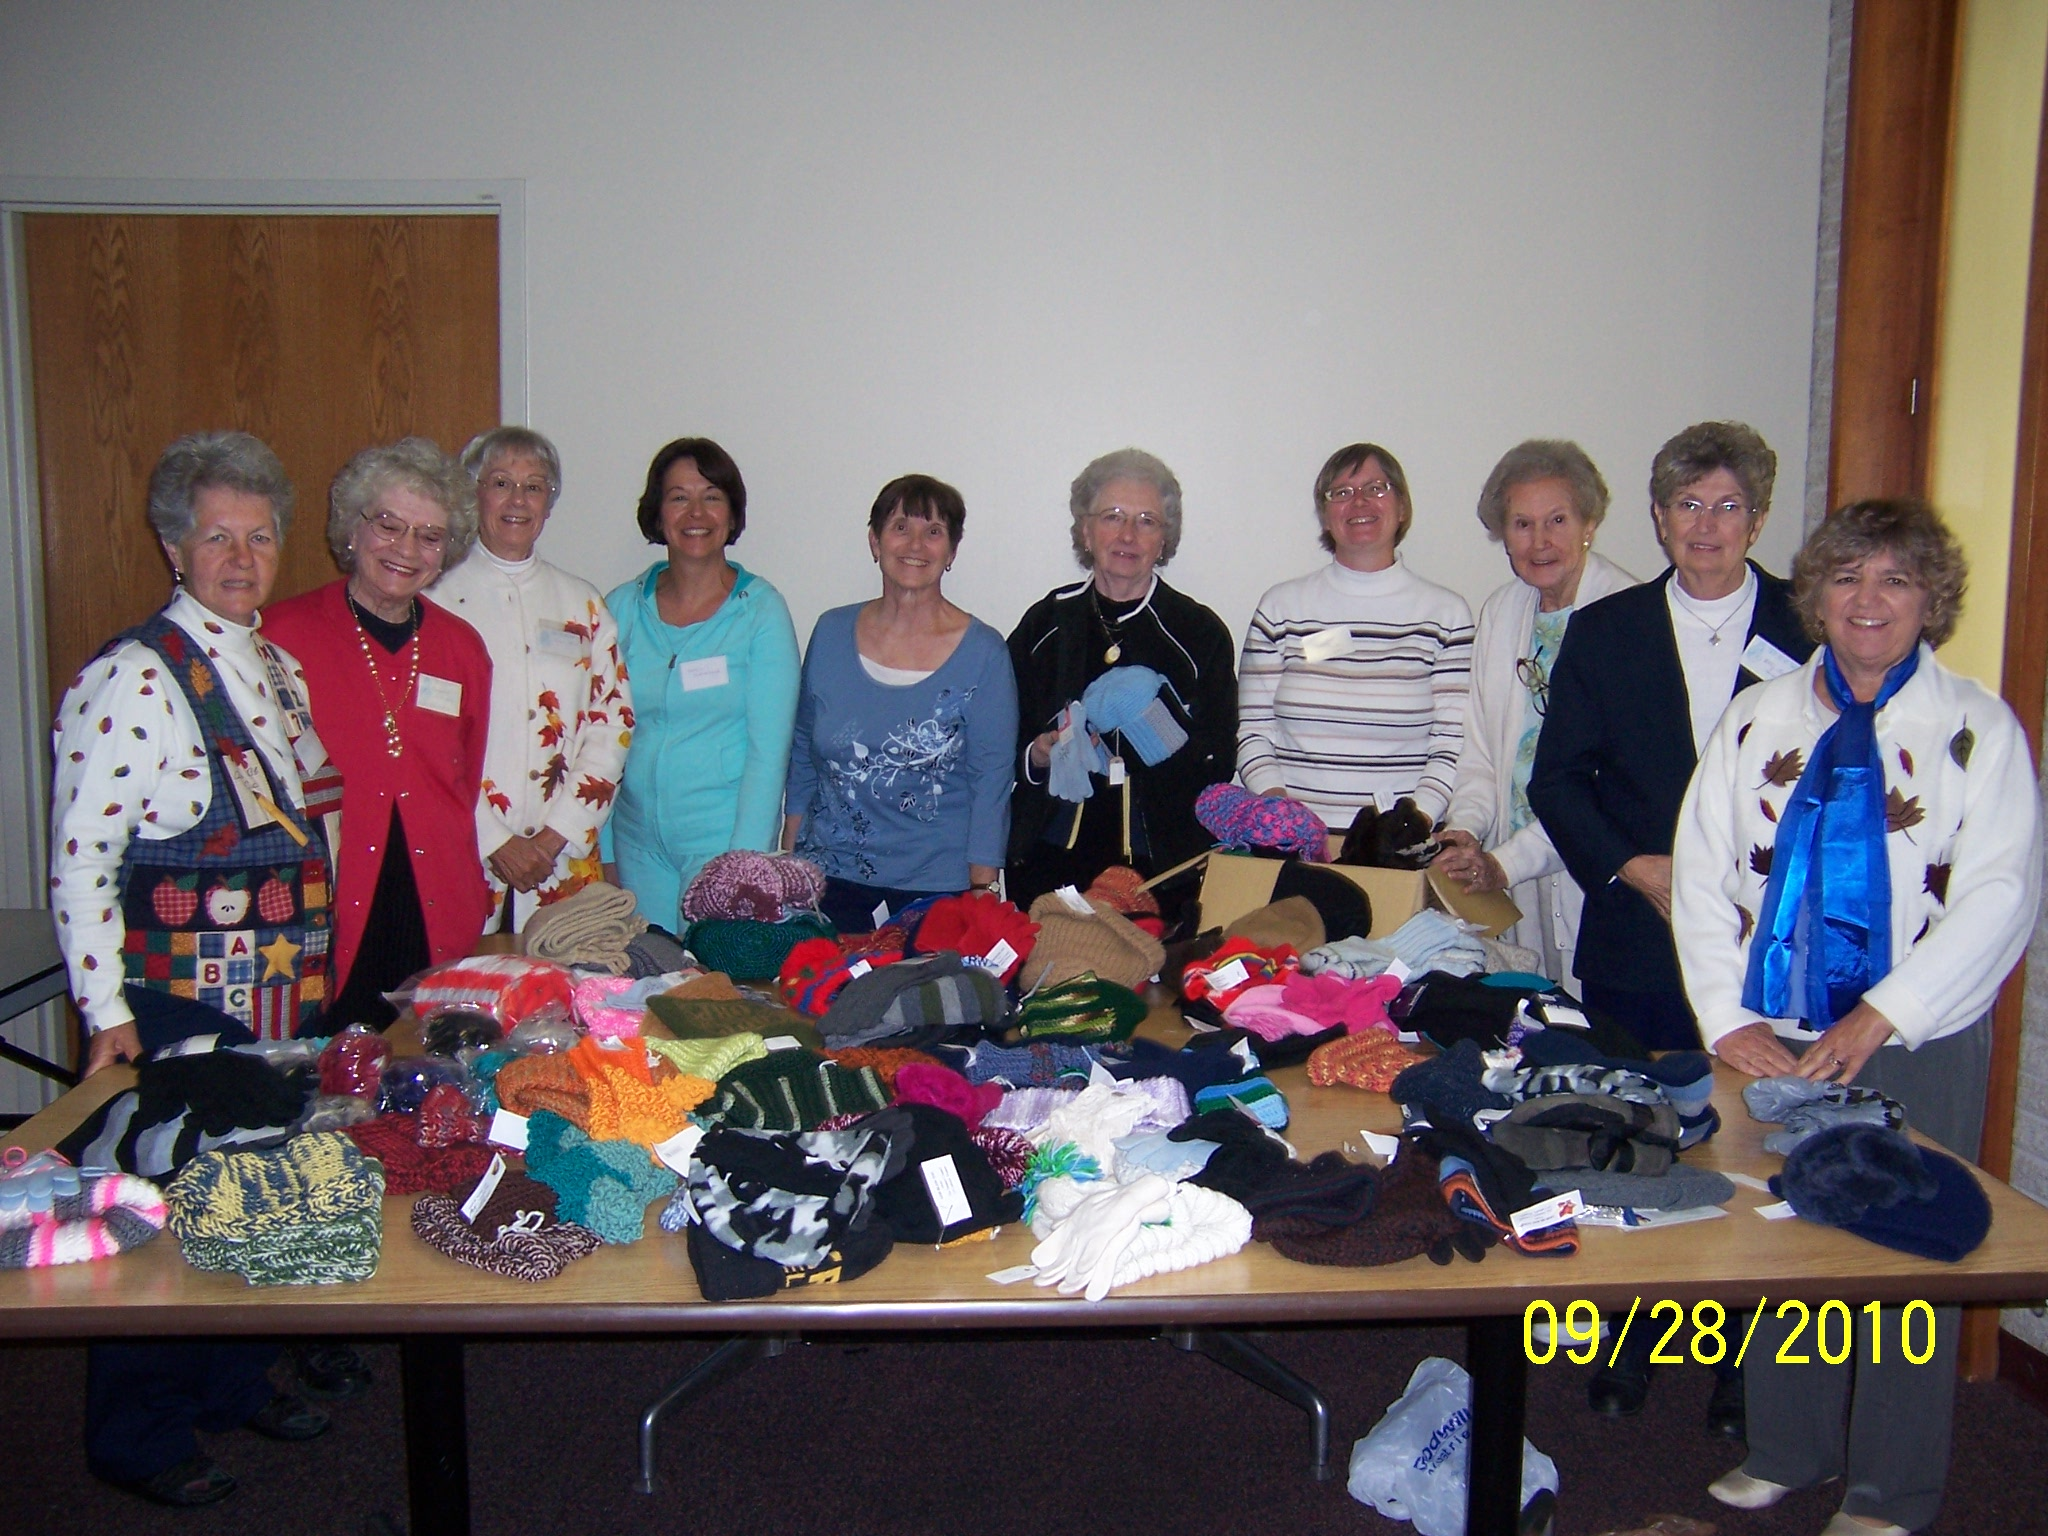 fort huachuca catholic single women Auxiliary chapel programs include pwoc, military council of catholic women fort huachuca offers a single point of contact for volunteering on the installation.